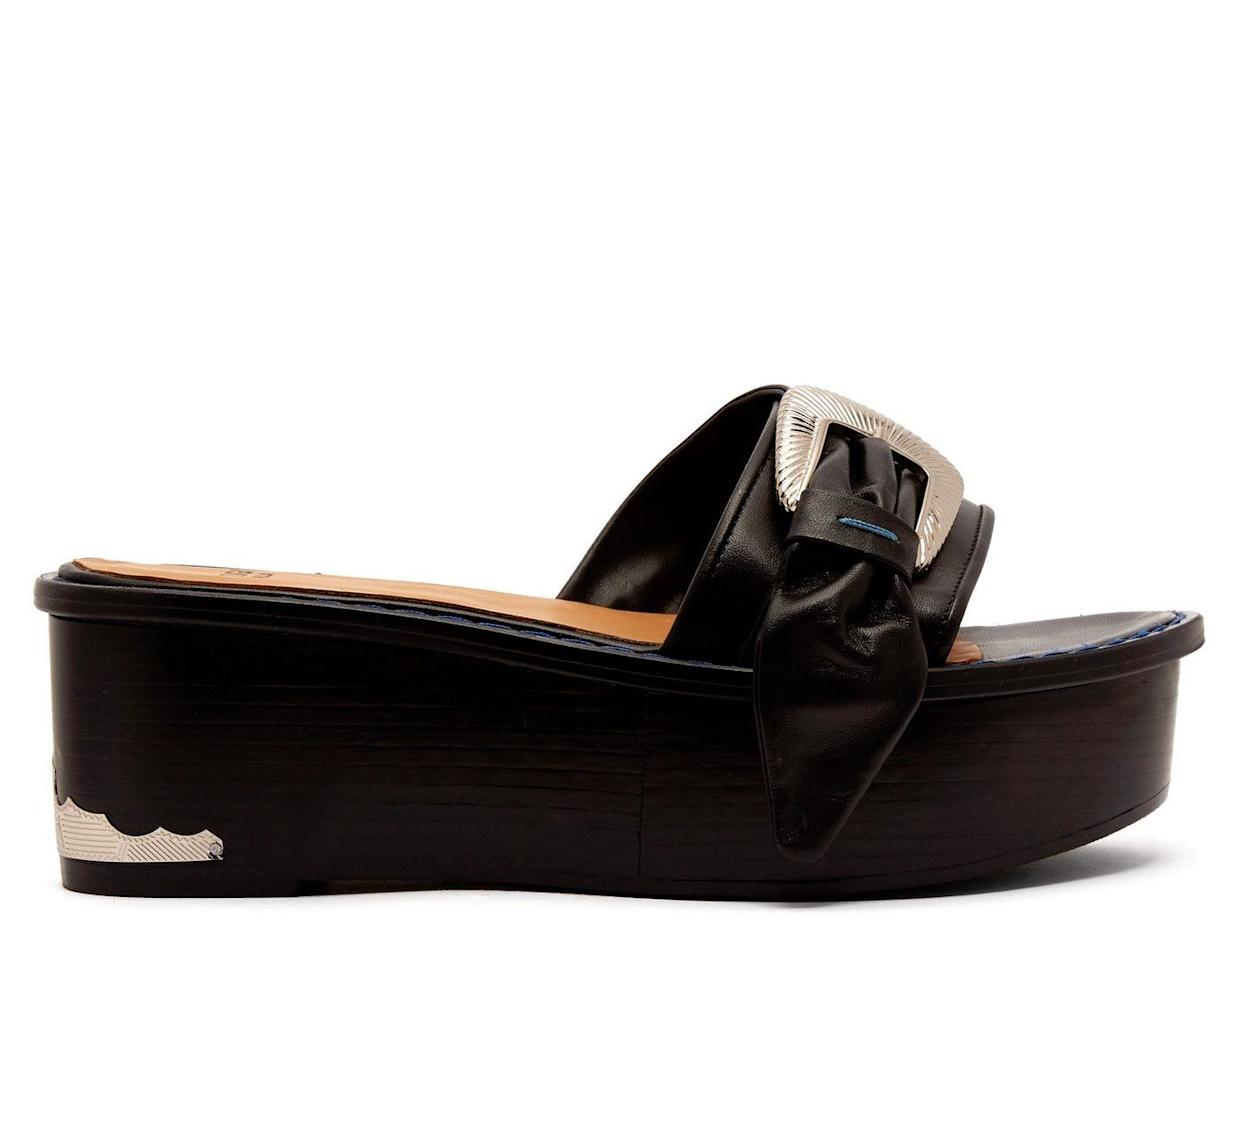 1a2f24423 The Controversial Sandals That Are Trending This Spring